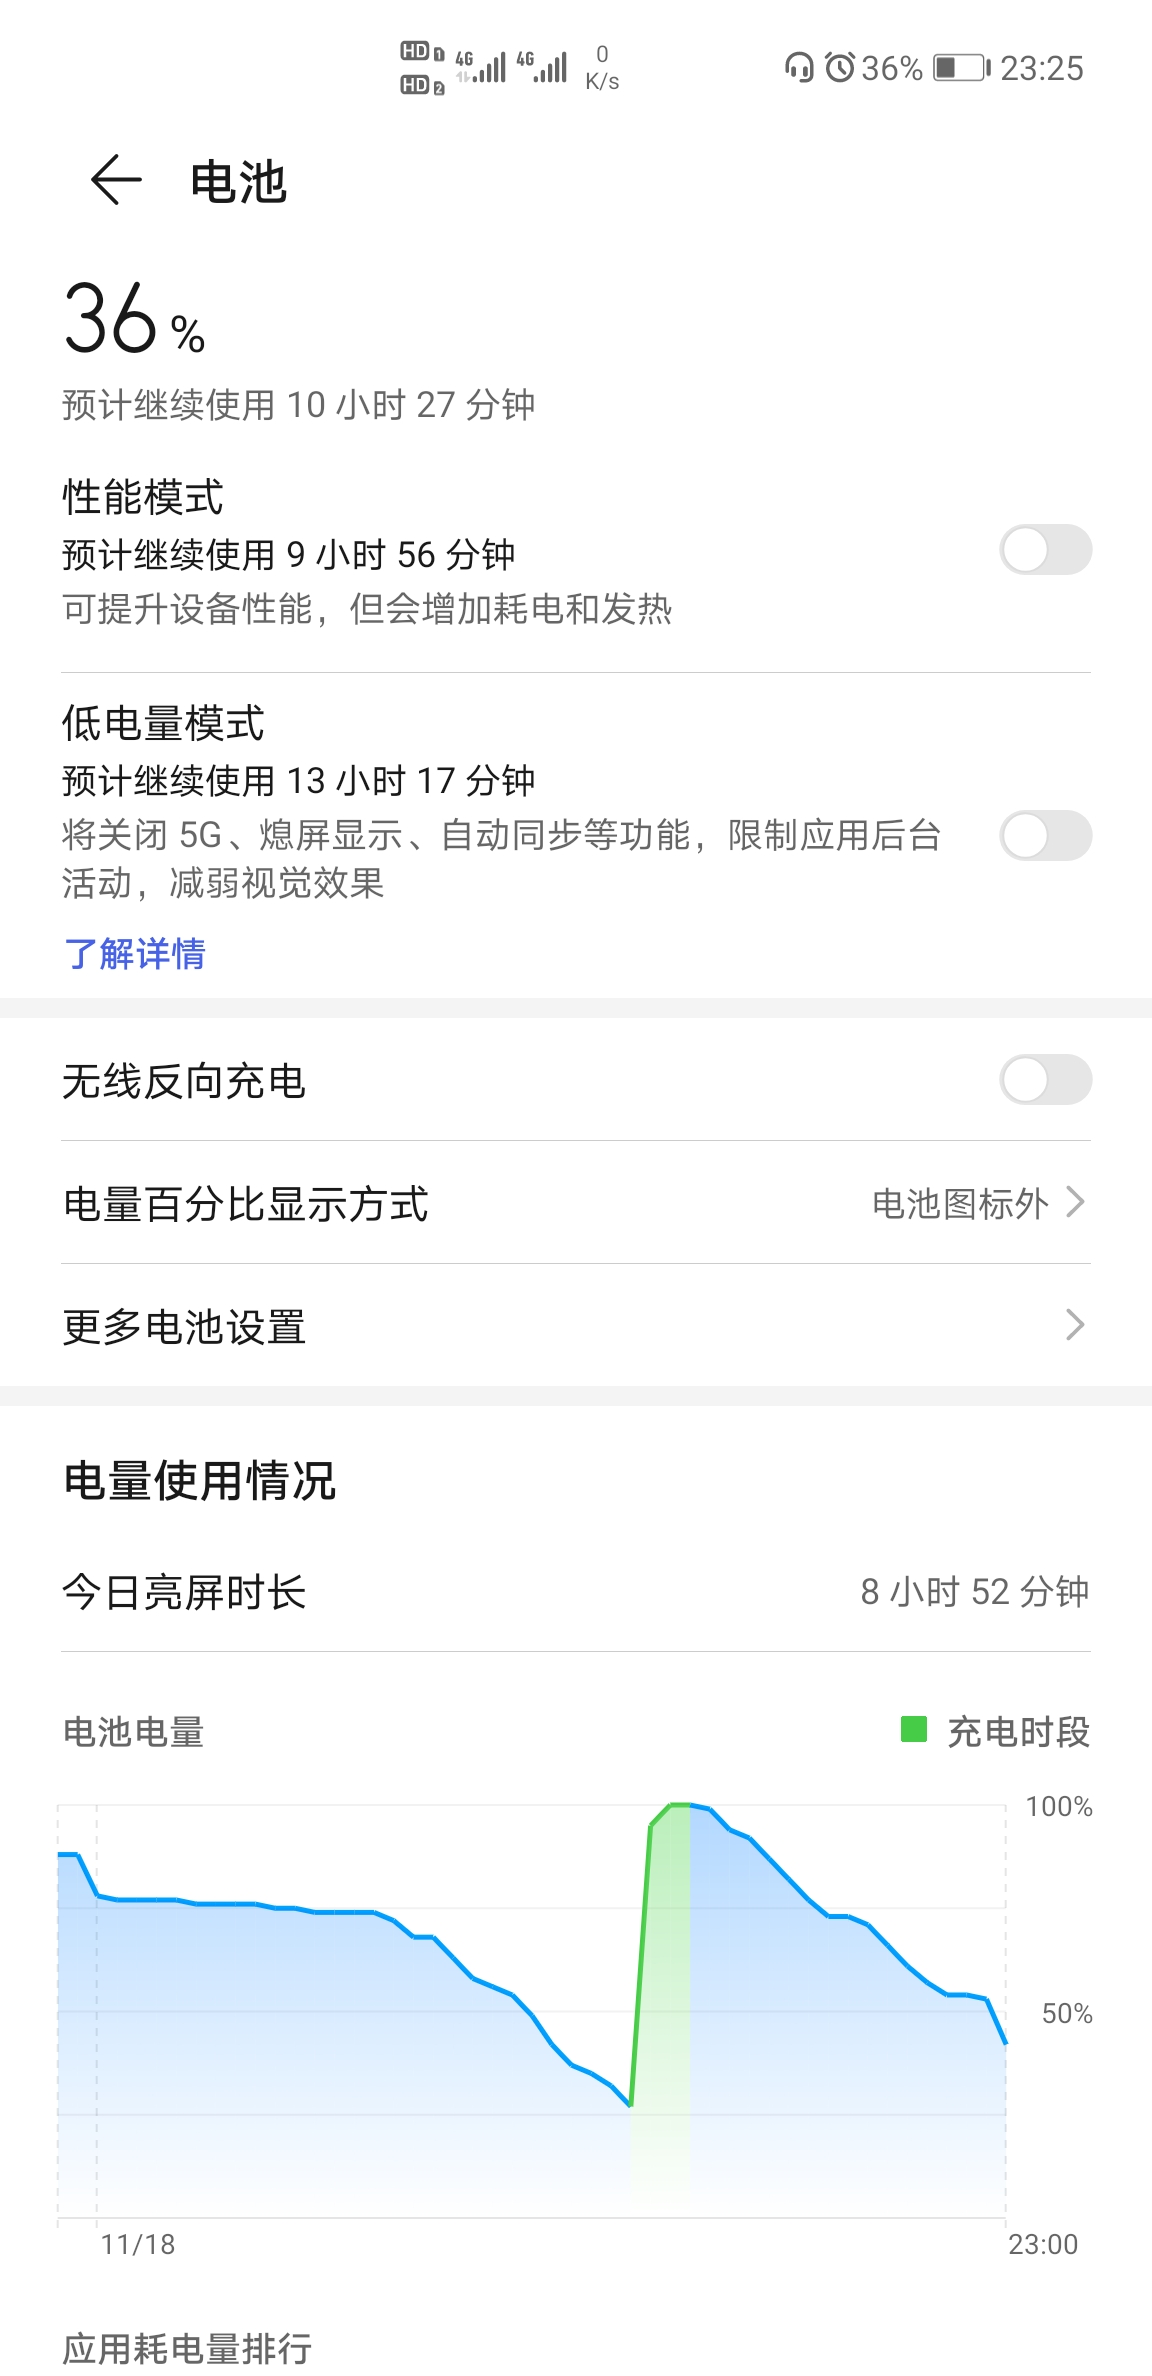 Screenshot_20201118_232512_com.huawei.systemmanager.jpg